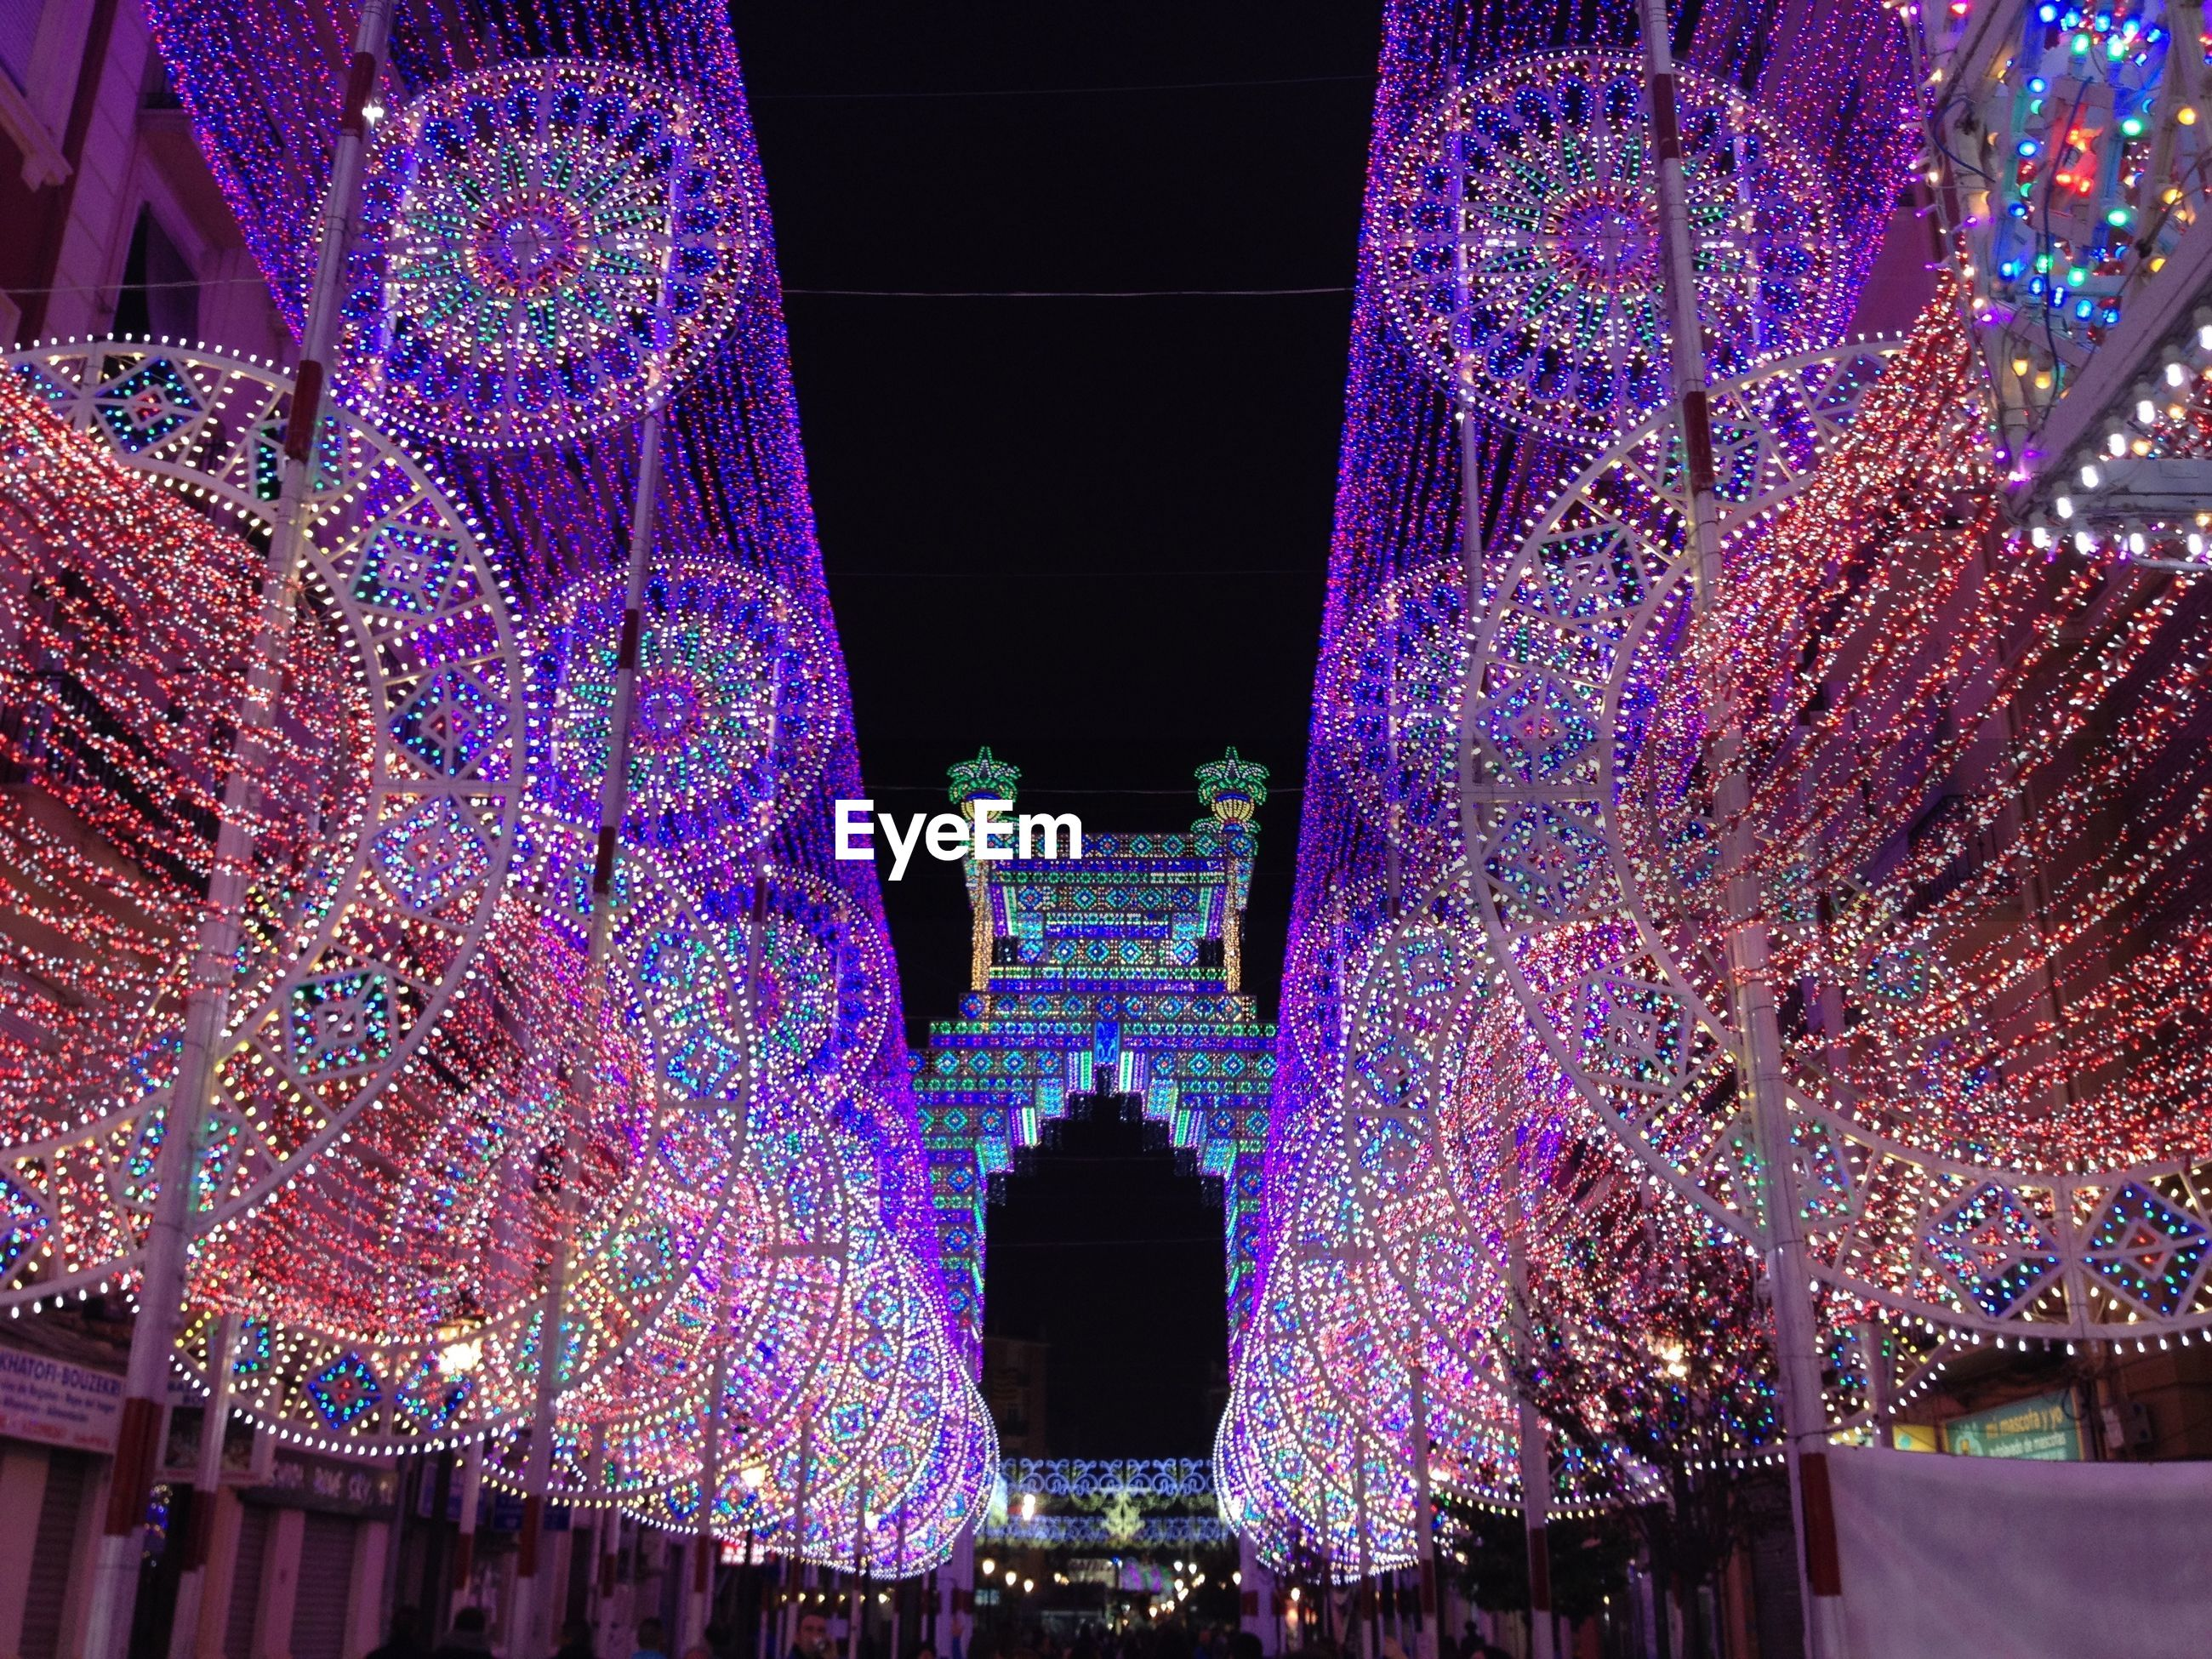 Low angle view of illuminated colorful lighting decorations in city at night